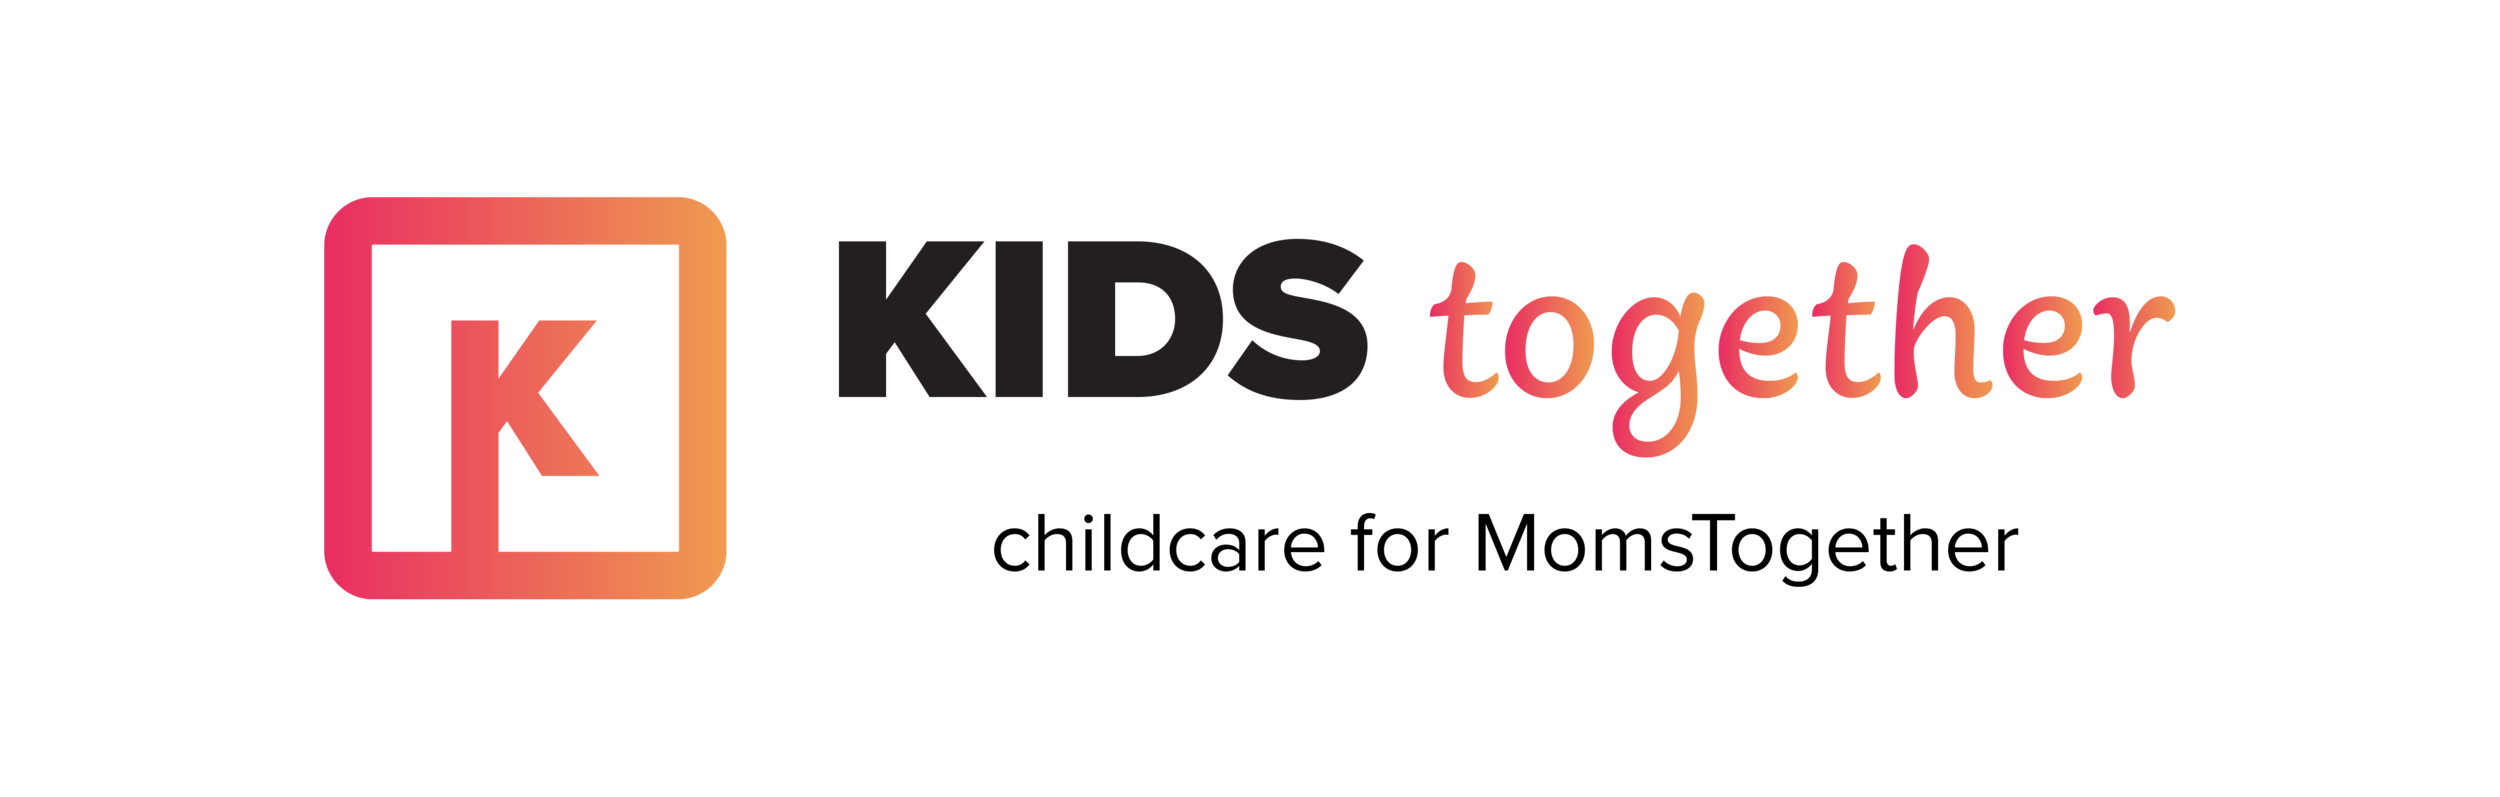 KidsTogether Logo 3.png